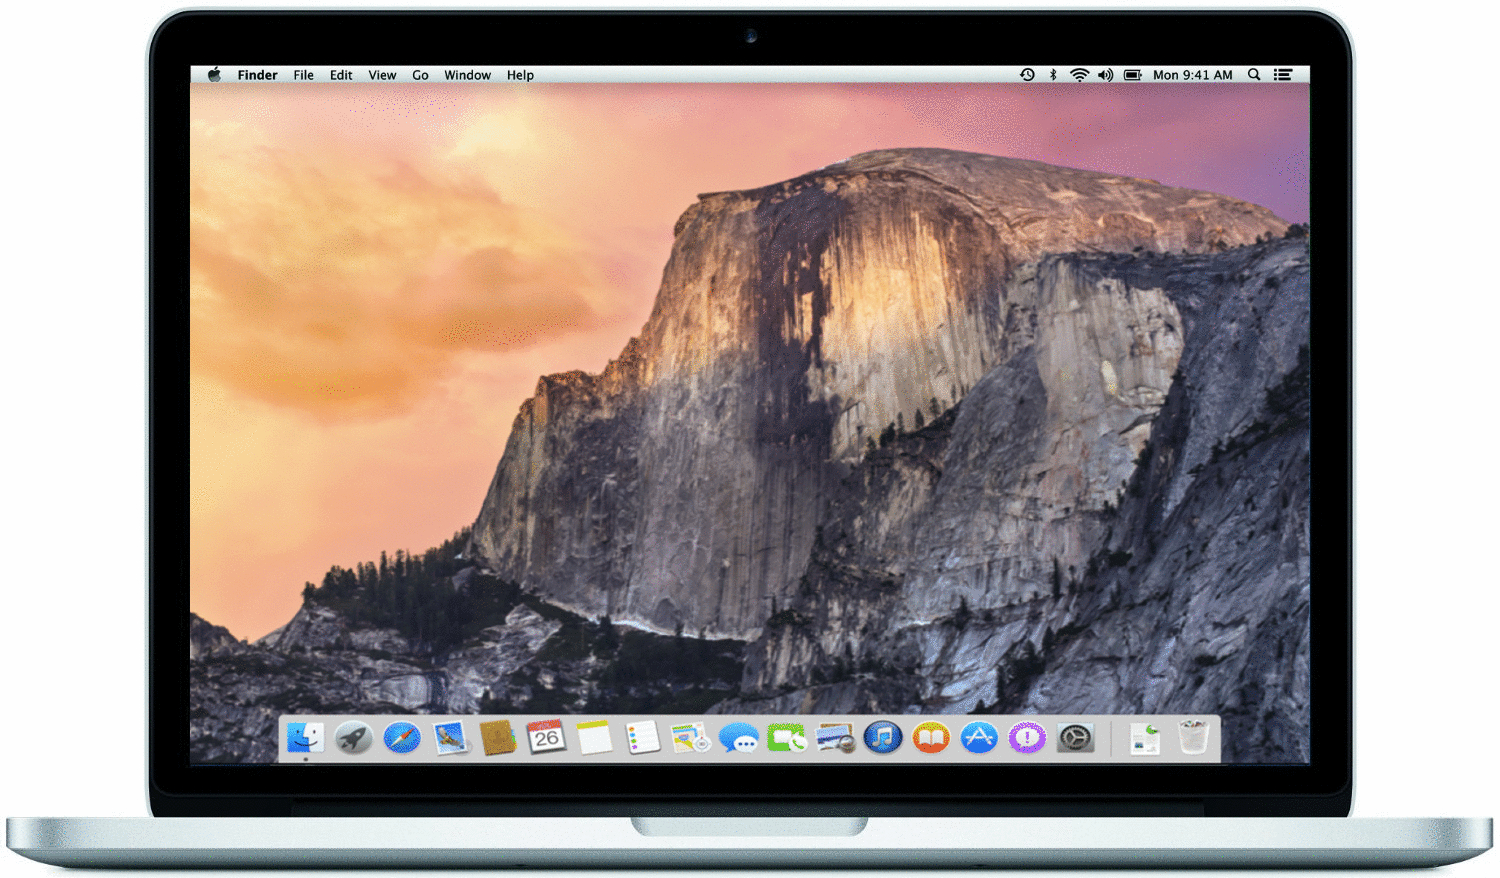 Apple MacBook Pro CTO 13.3 (Retina Display) 3.1 GHz Intel Core i7 16 GB RAM 1 TB PCIe SSD [Early 2015]